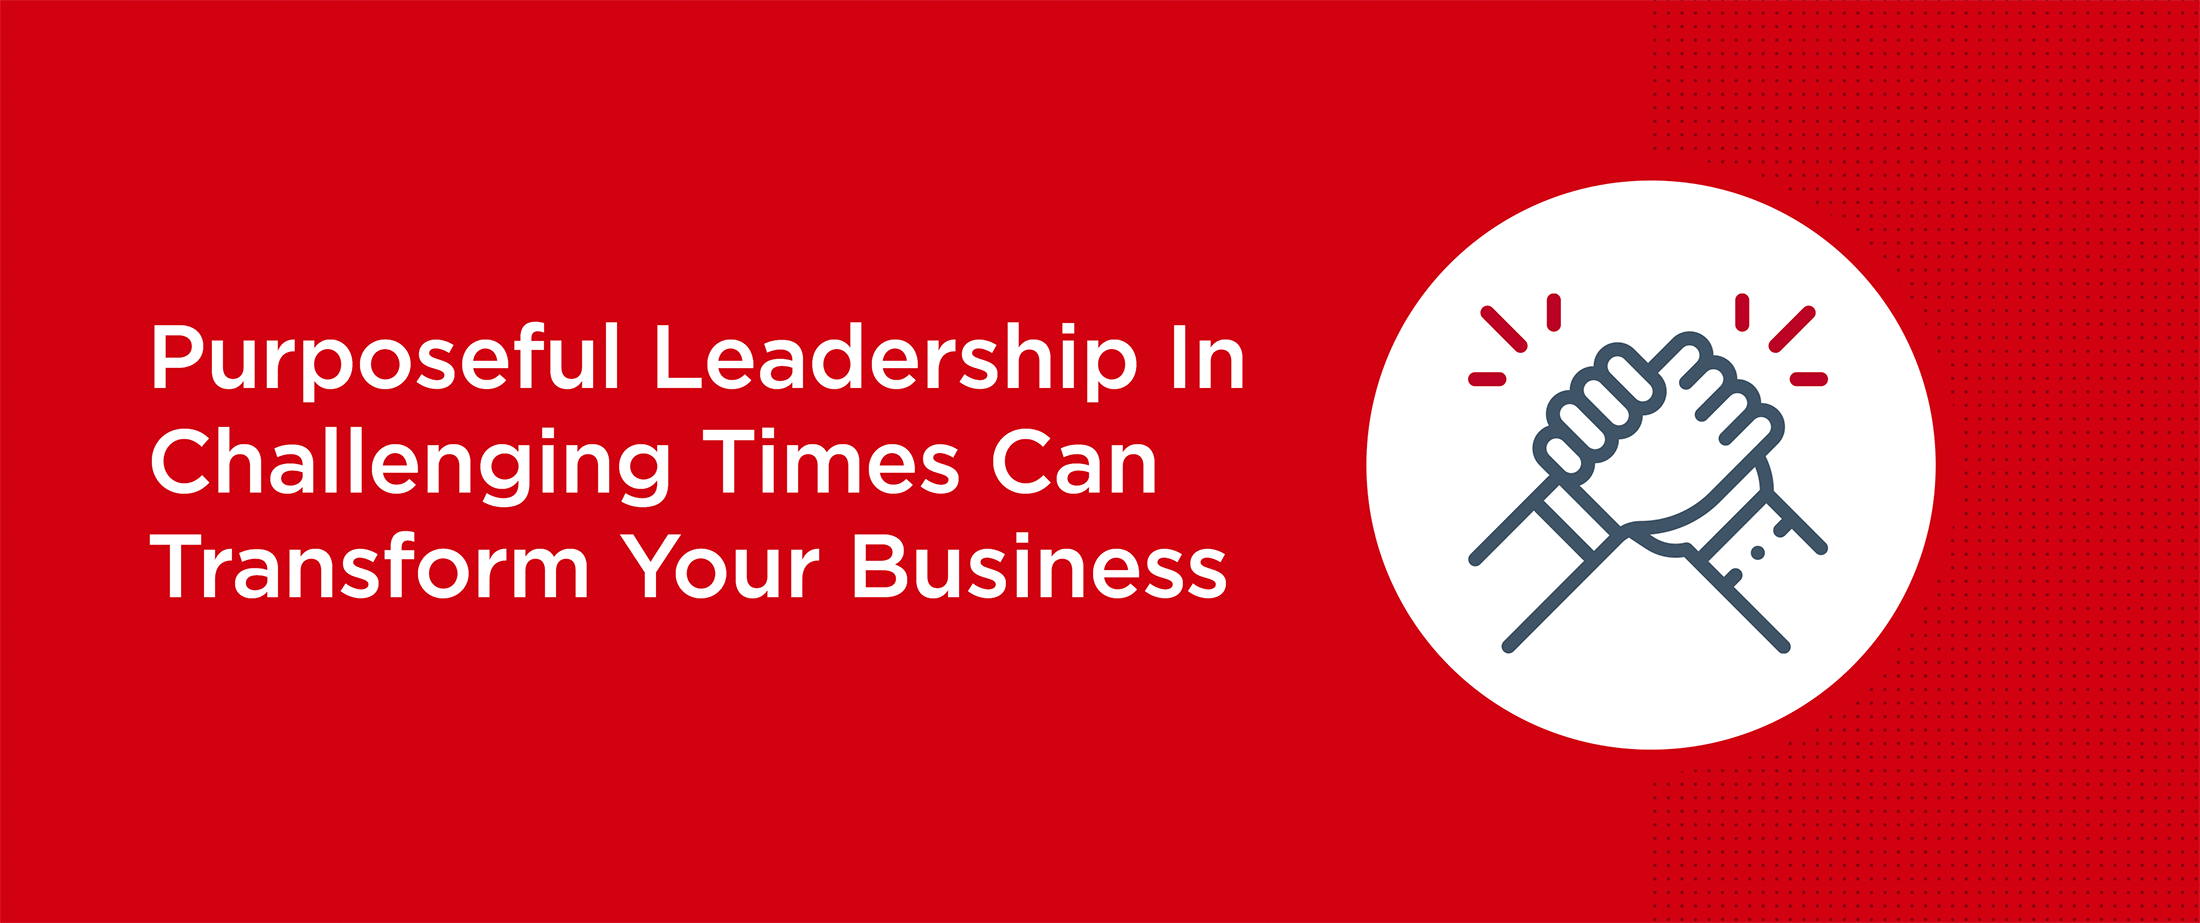 Purposeful Leadership In Challenging Times Can Transform Your Business